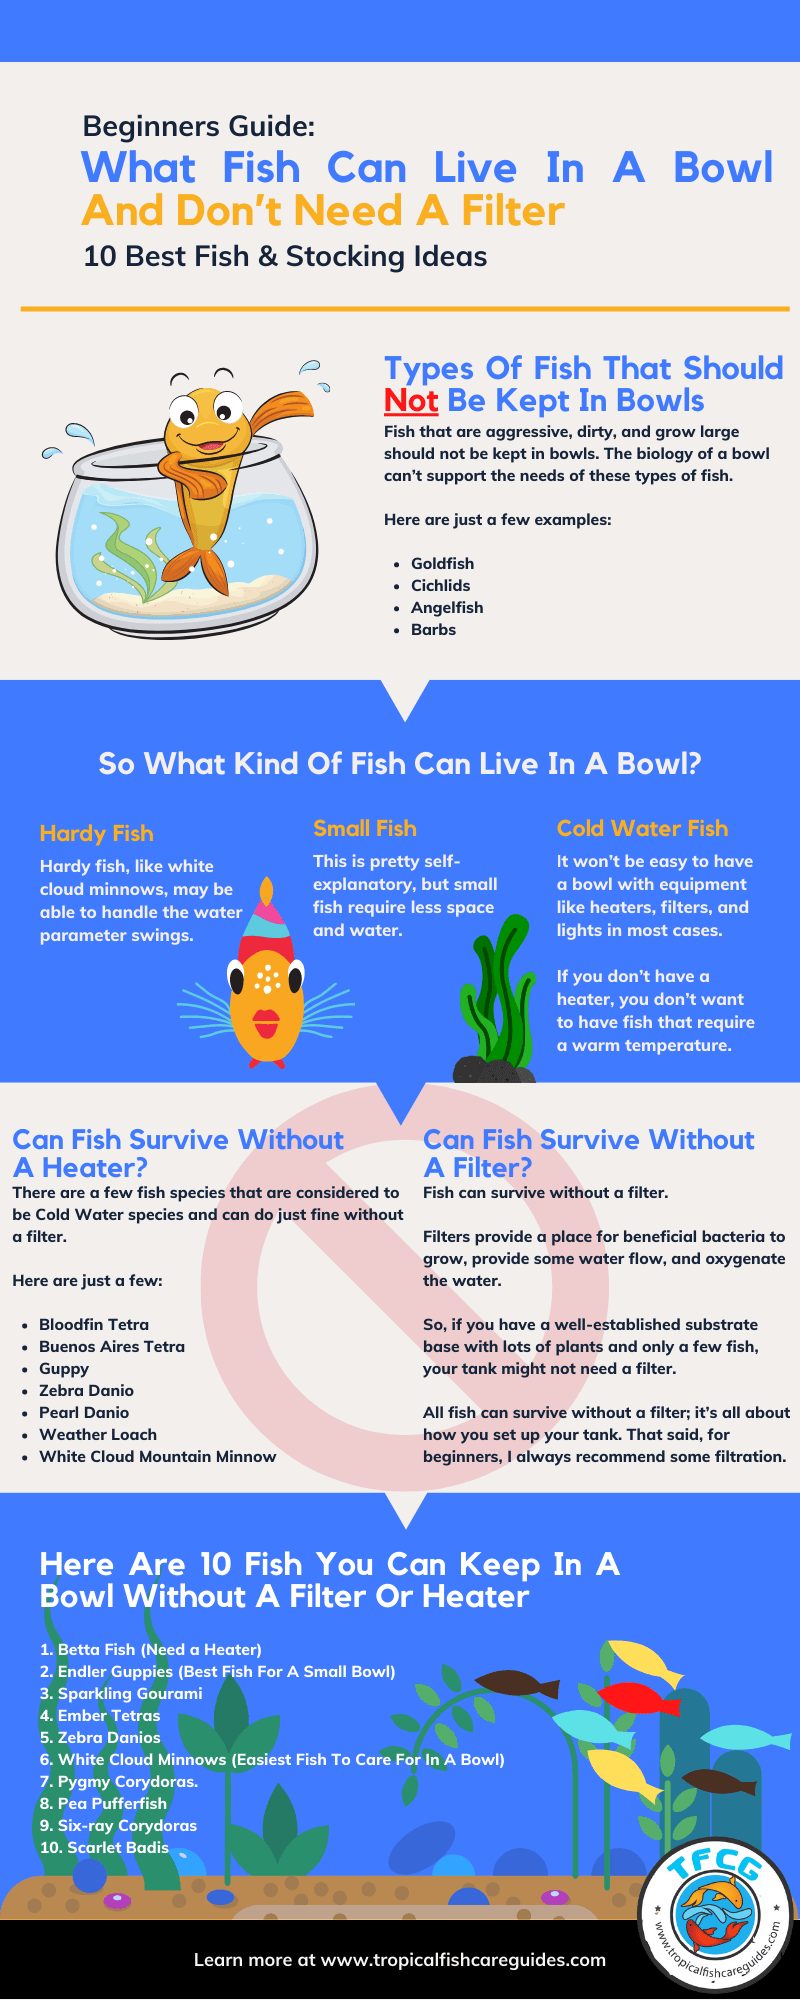 Infographic Of What Fish Can Live In A Bowl And Don't Need A Filter (10 Best Fish)